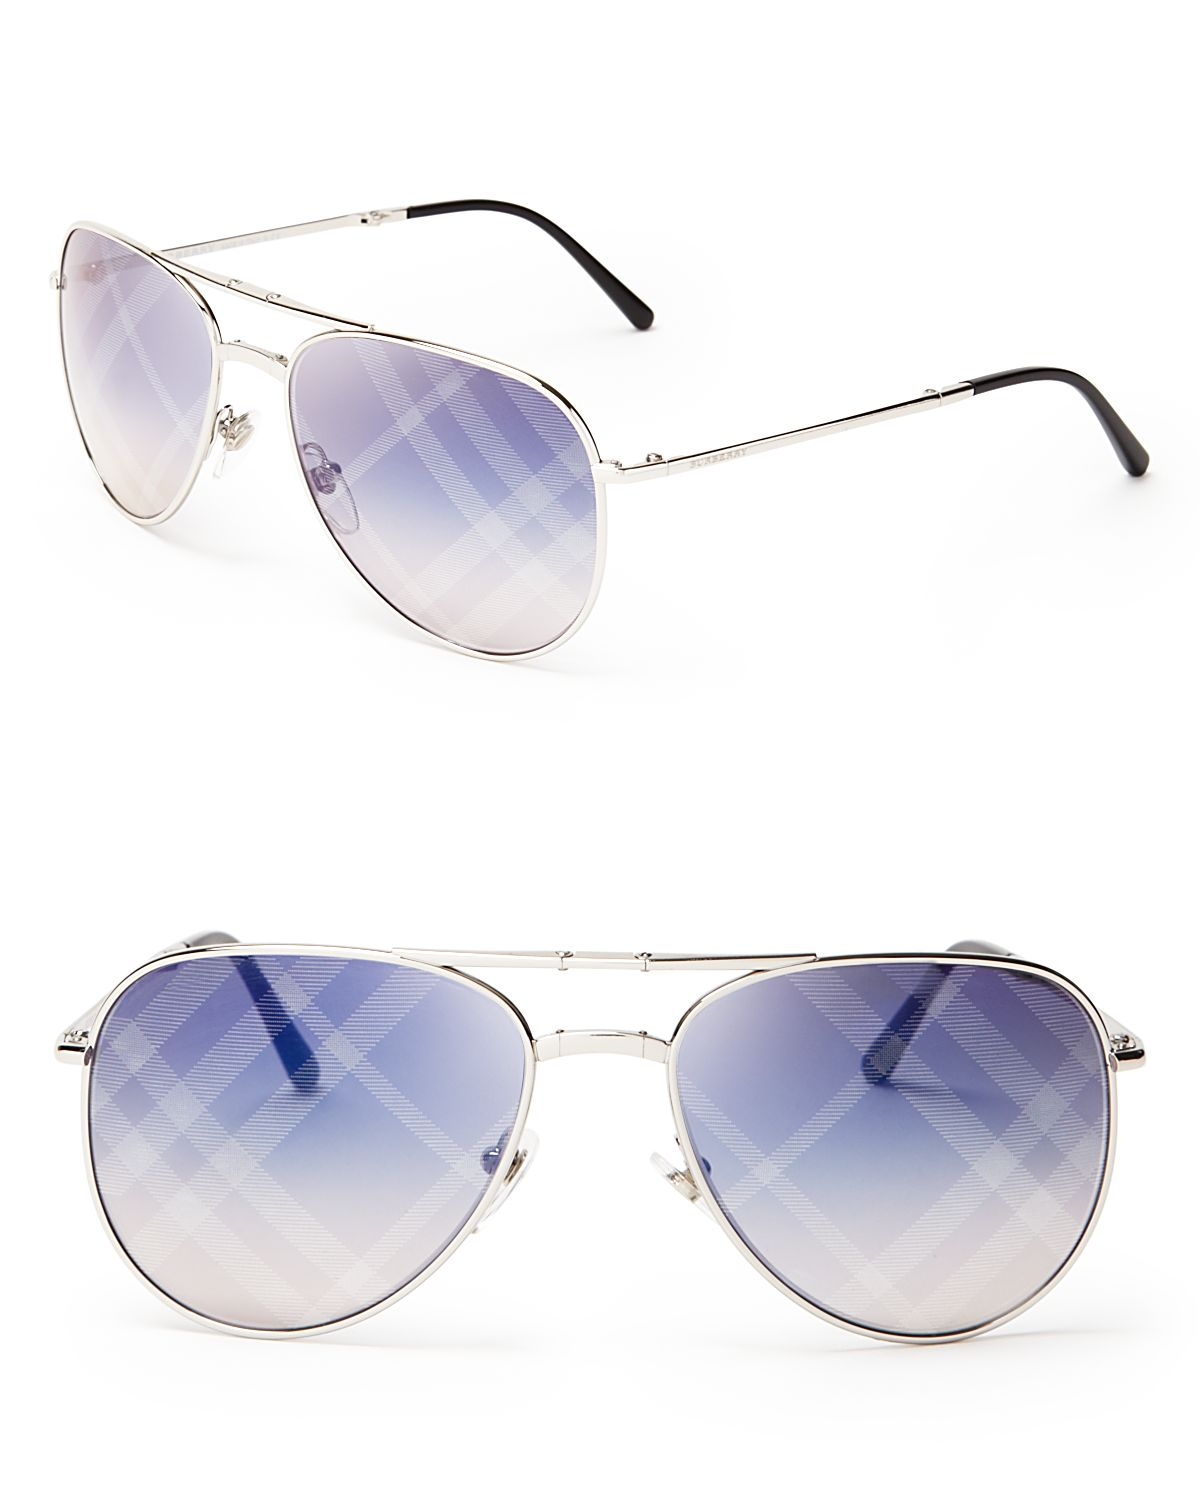 Burberry Spark Mirrored Aviator Sunglasses in Silver